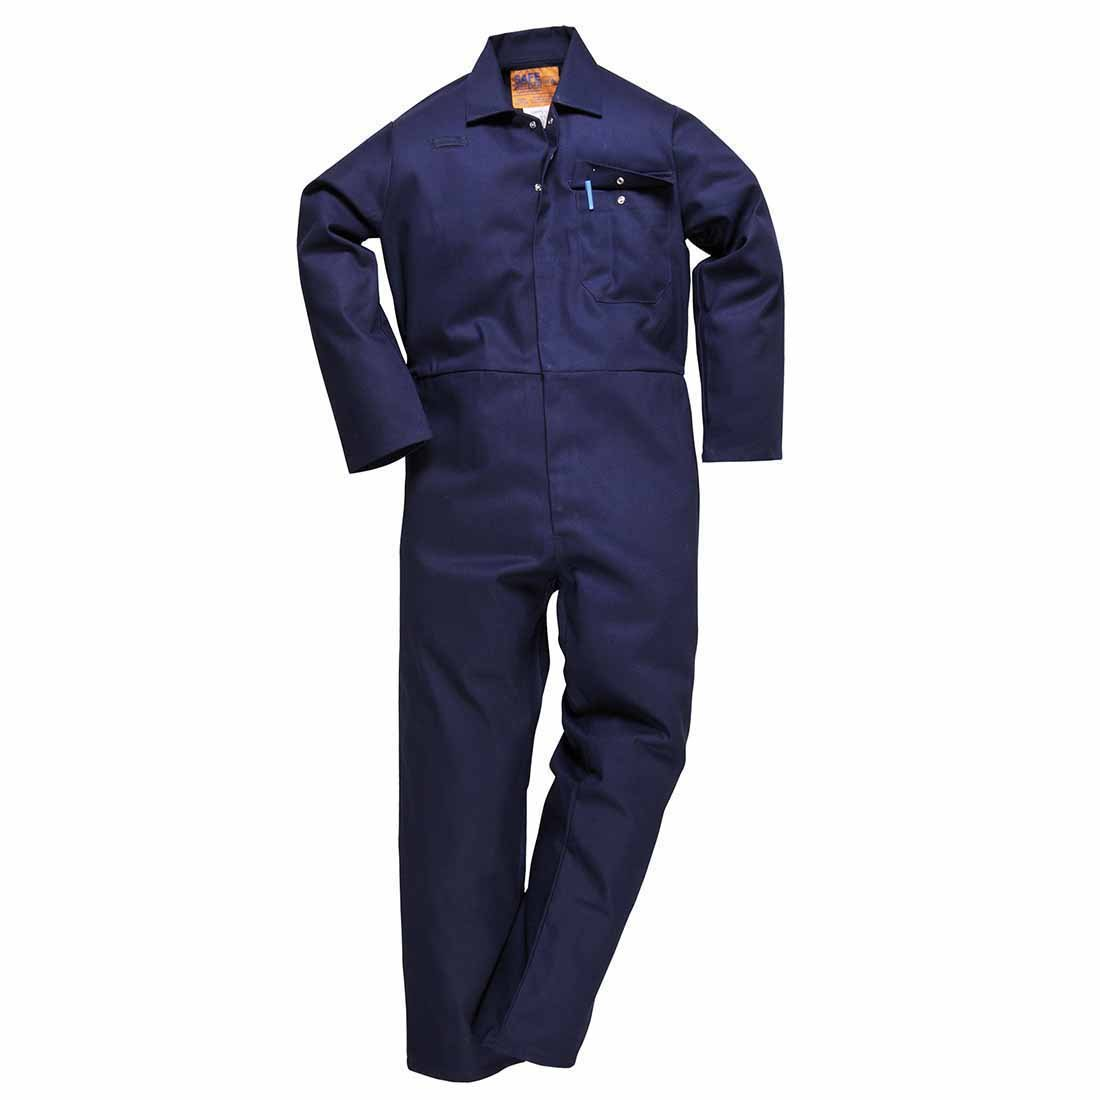 Portwest C030 - CE SafeWelder boilersuit, color Armada, talla 3 XL: Amazon.es: Industria, empresas y ciencia